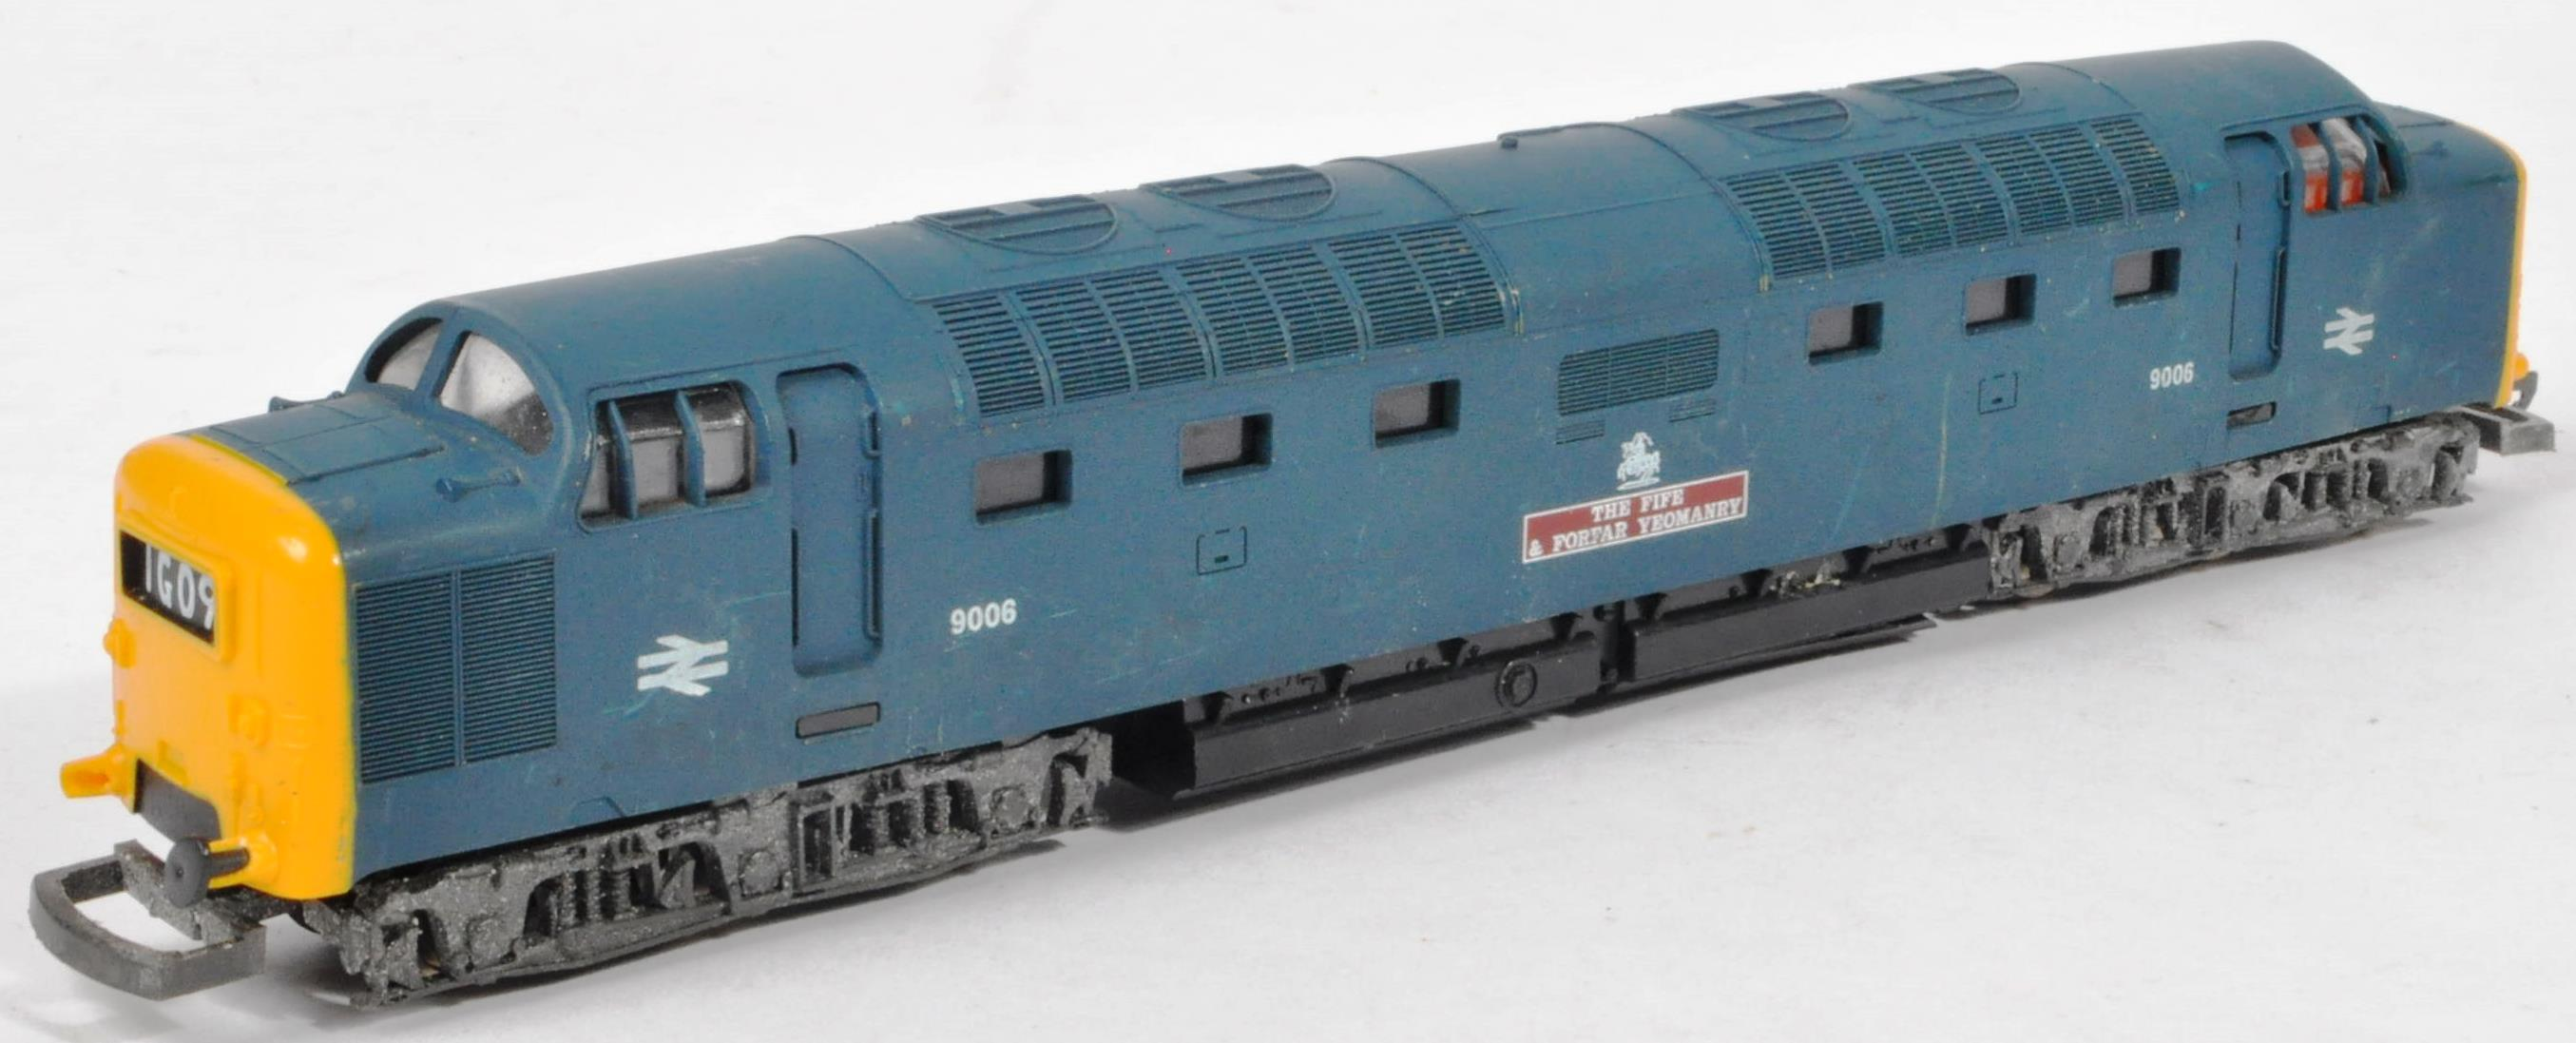 COLLECTION OF ASSORTED DIESEL 00 GAUGE TRAINSET LOCOMOTIVES & CARRIAGES - Image 8 of 10